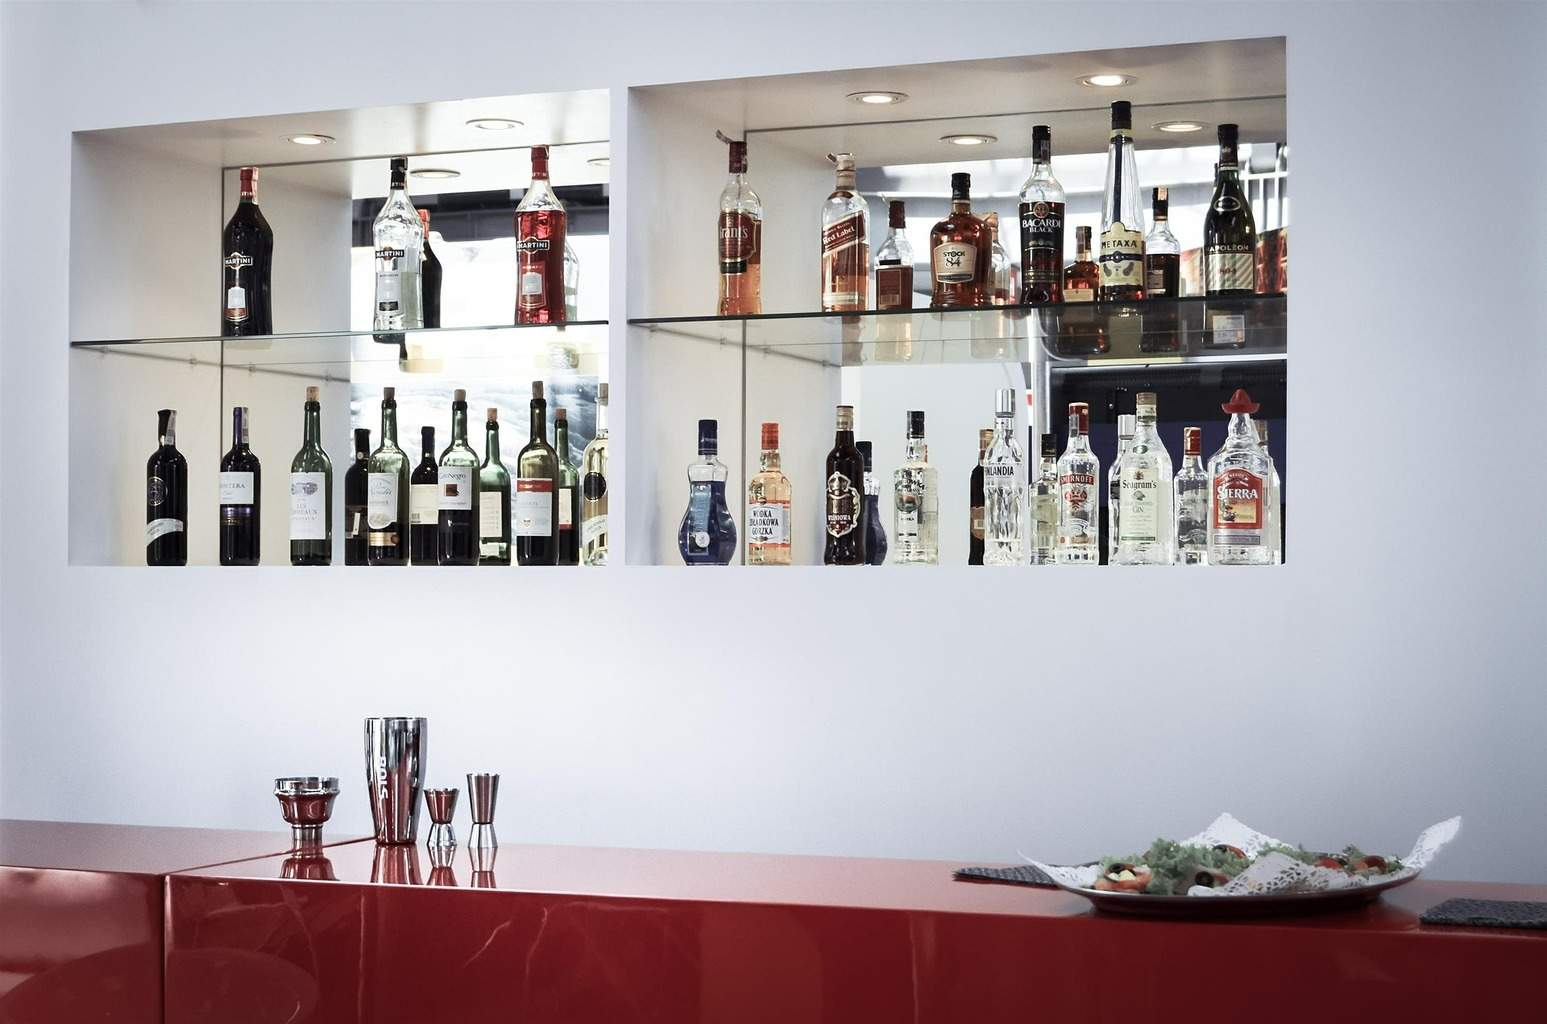 liqueur and spirits bottles neatly arranged on glass shelving behind a bar